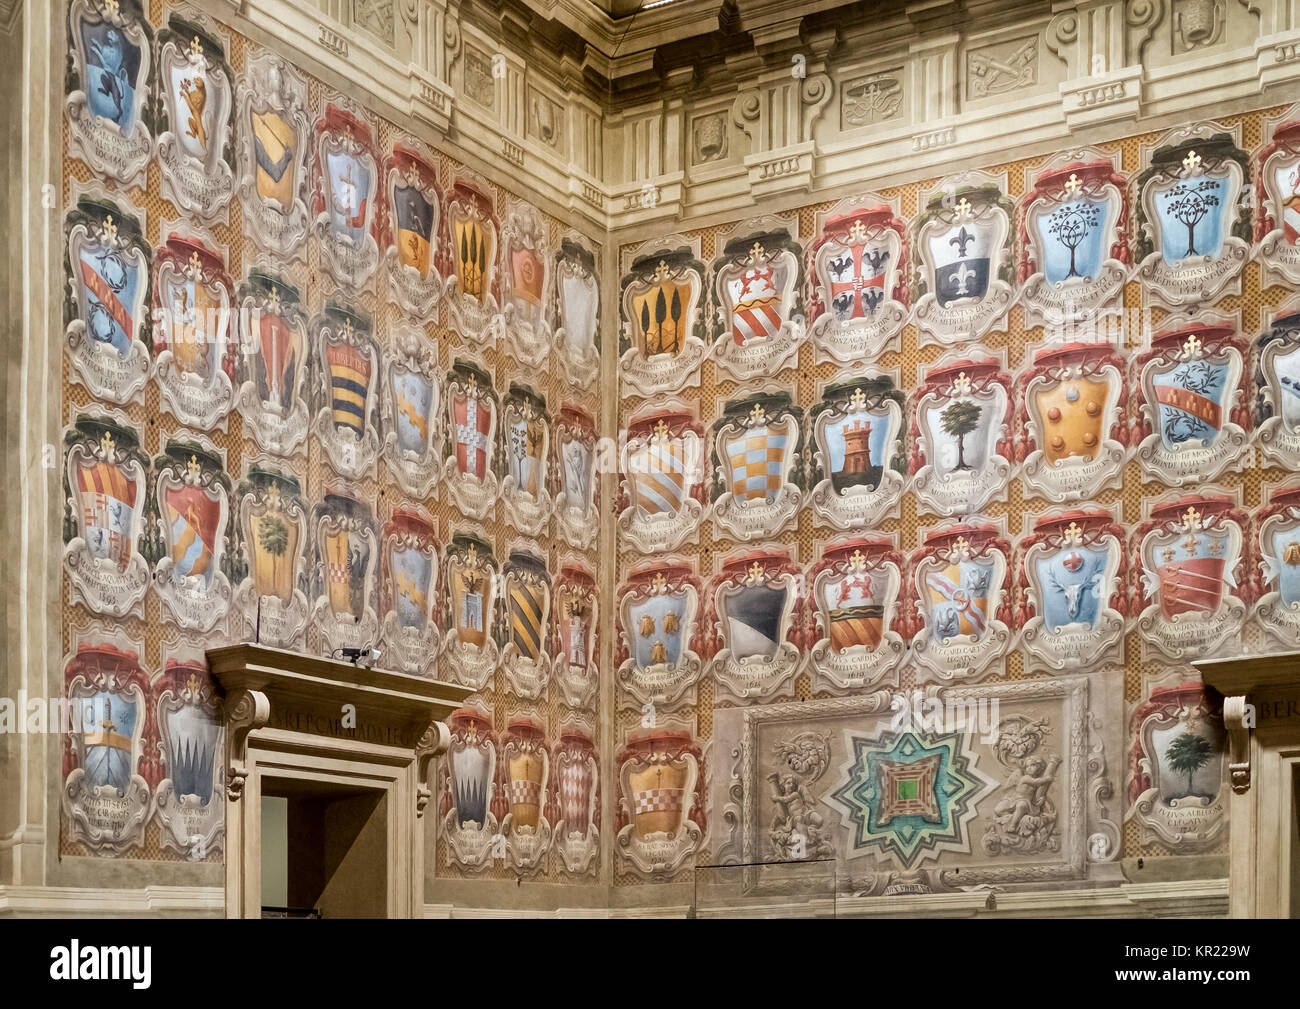 Bologna, italy. 03 - 18 - 2017. Famous  'Sala Urbana' in the Accursio palace; historical castle of the city. - Stock Image